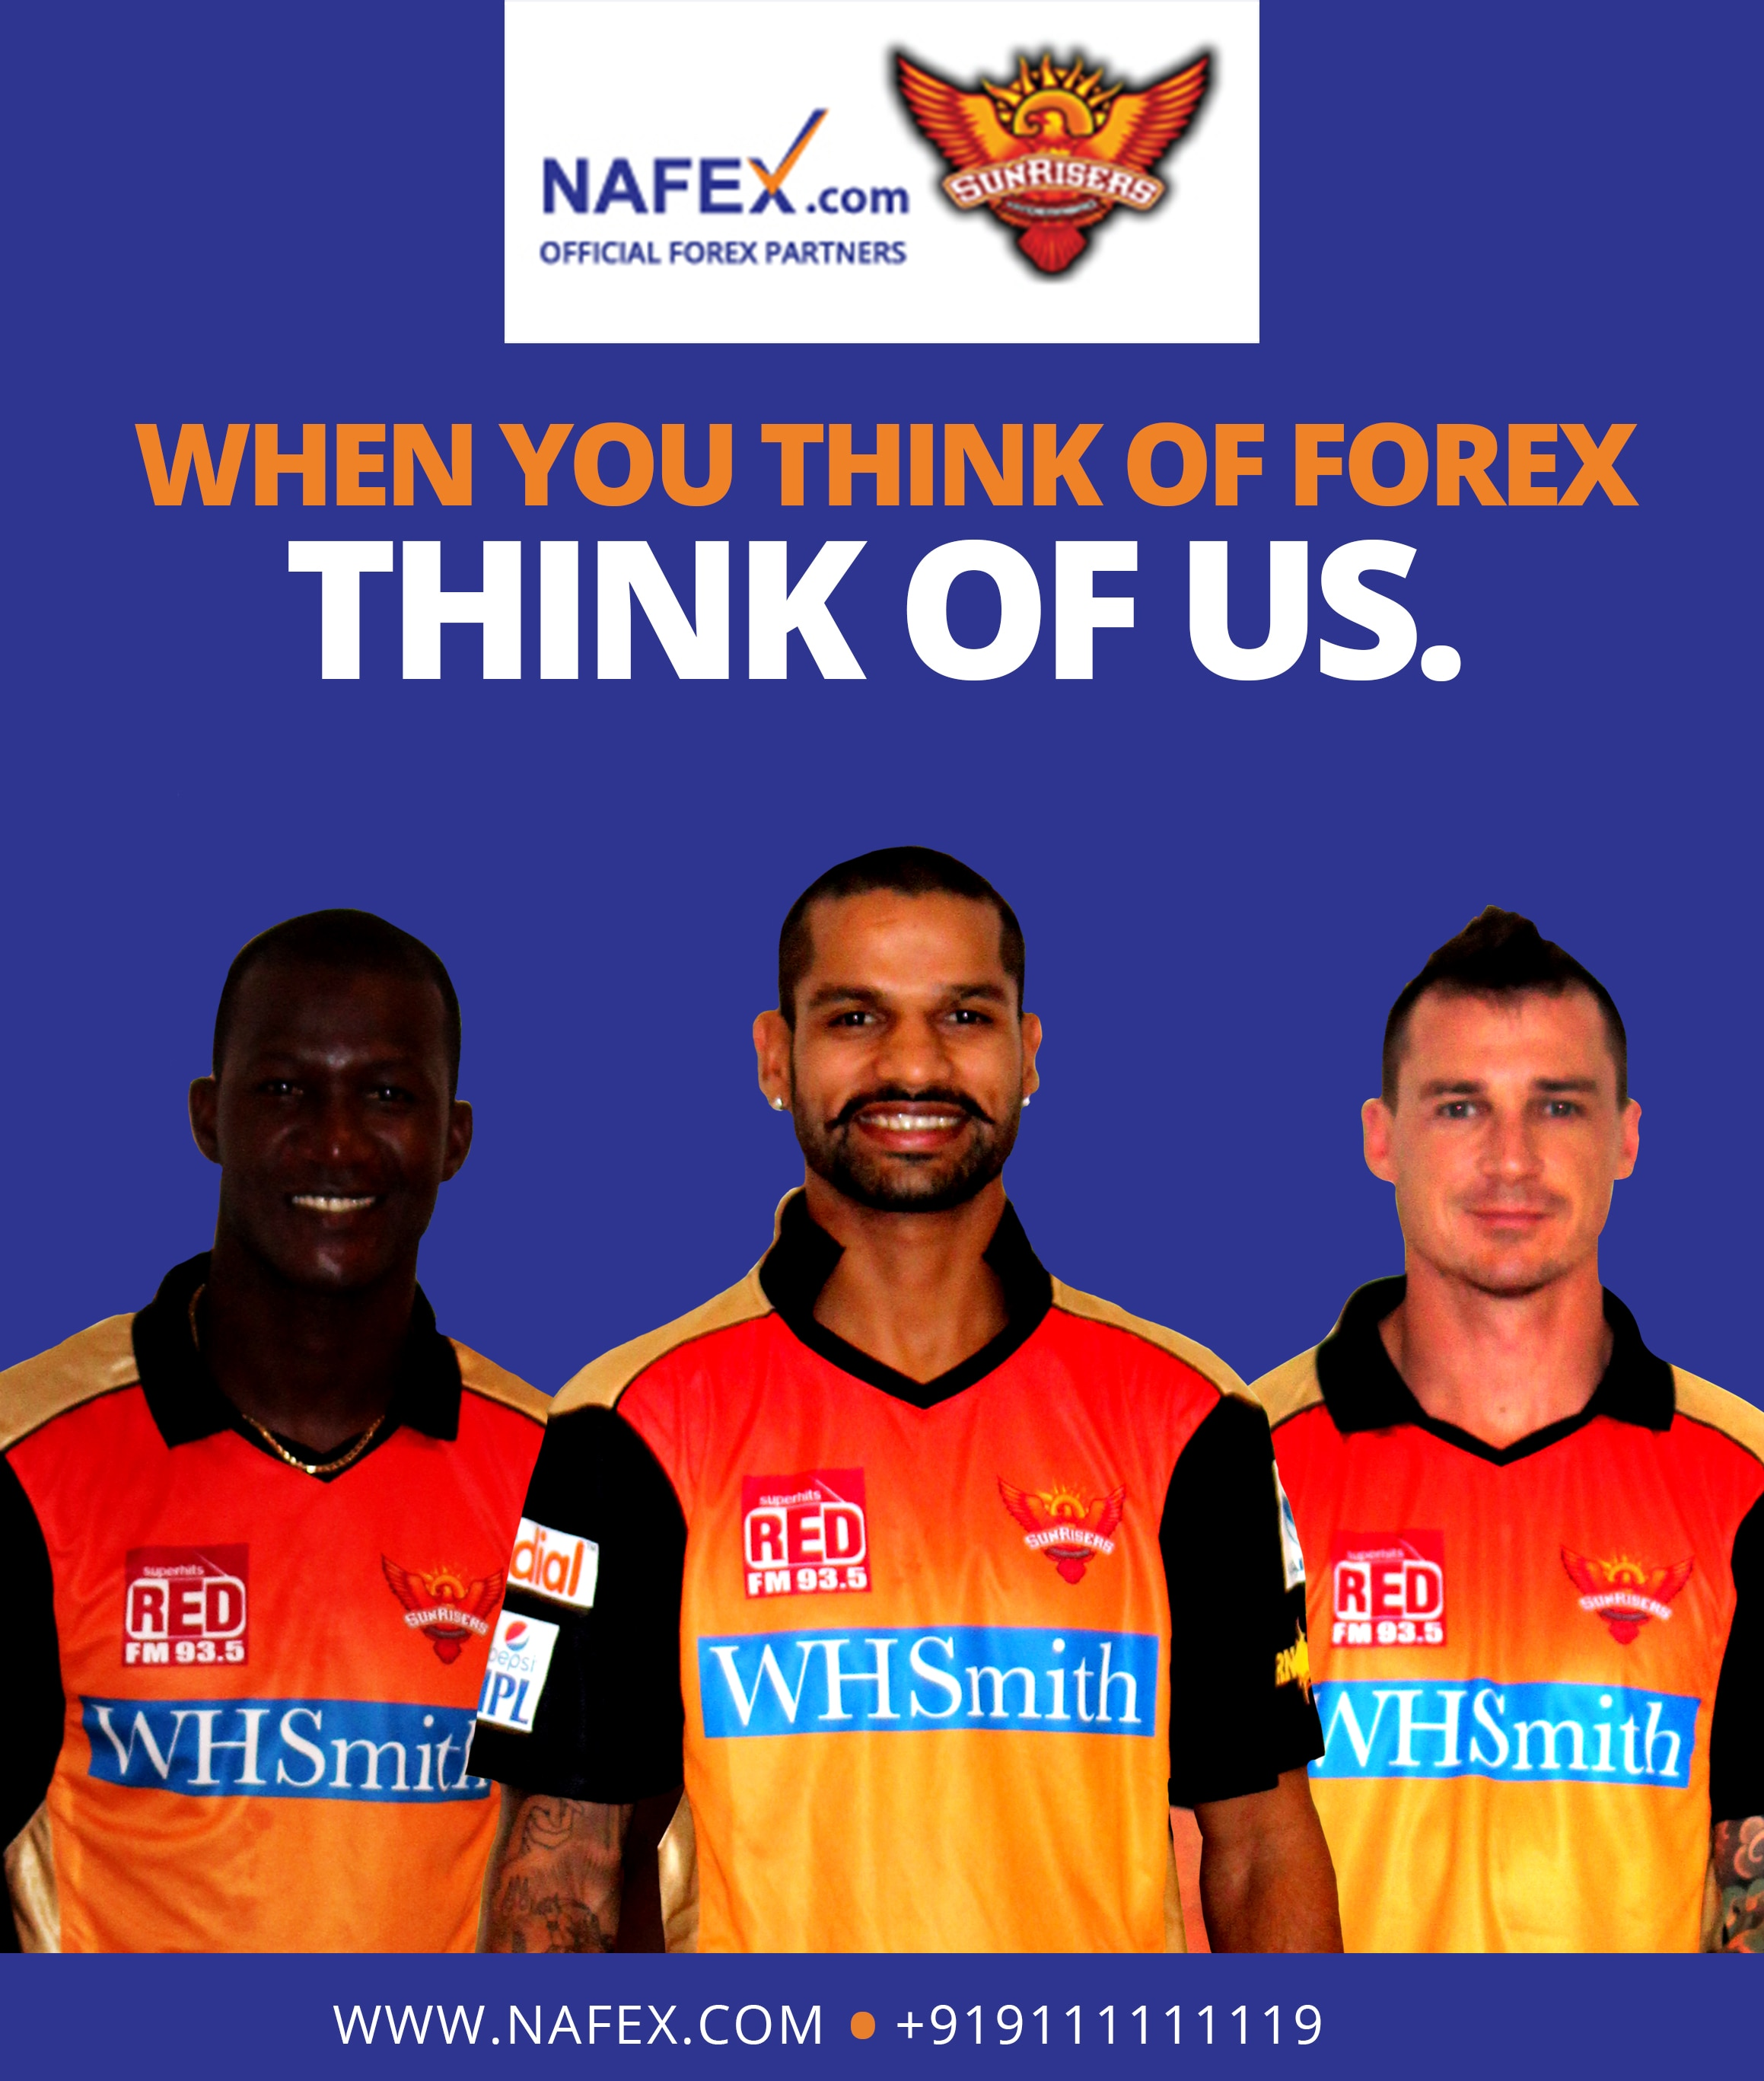 Nafex - Arjun Nagar Foreign Currency Exchange Dealers Agents Arjun Nagar , Online Travellers Cheque & Forex Prepaid Card